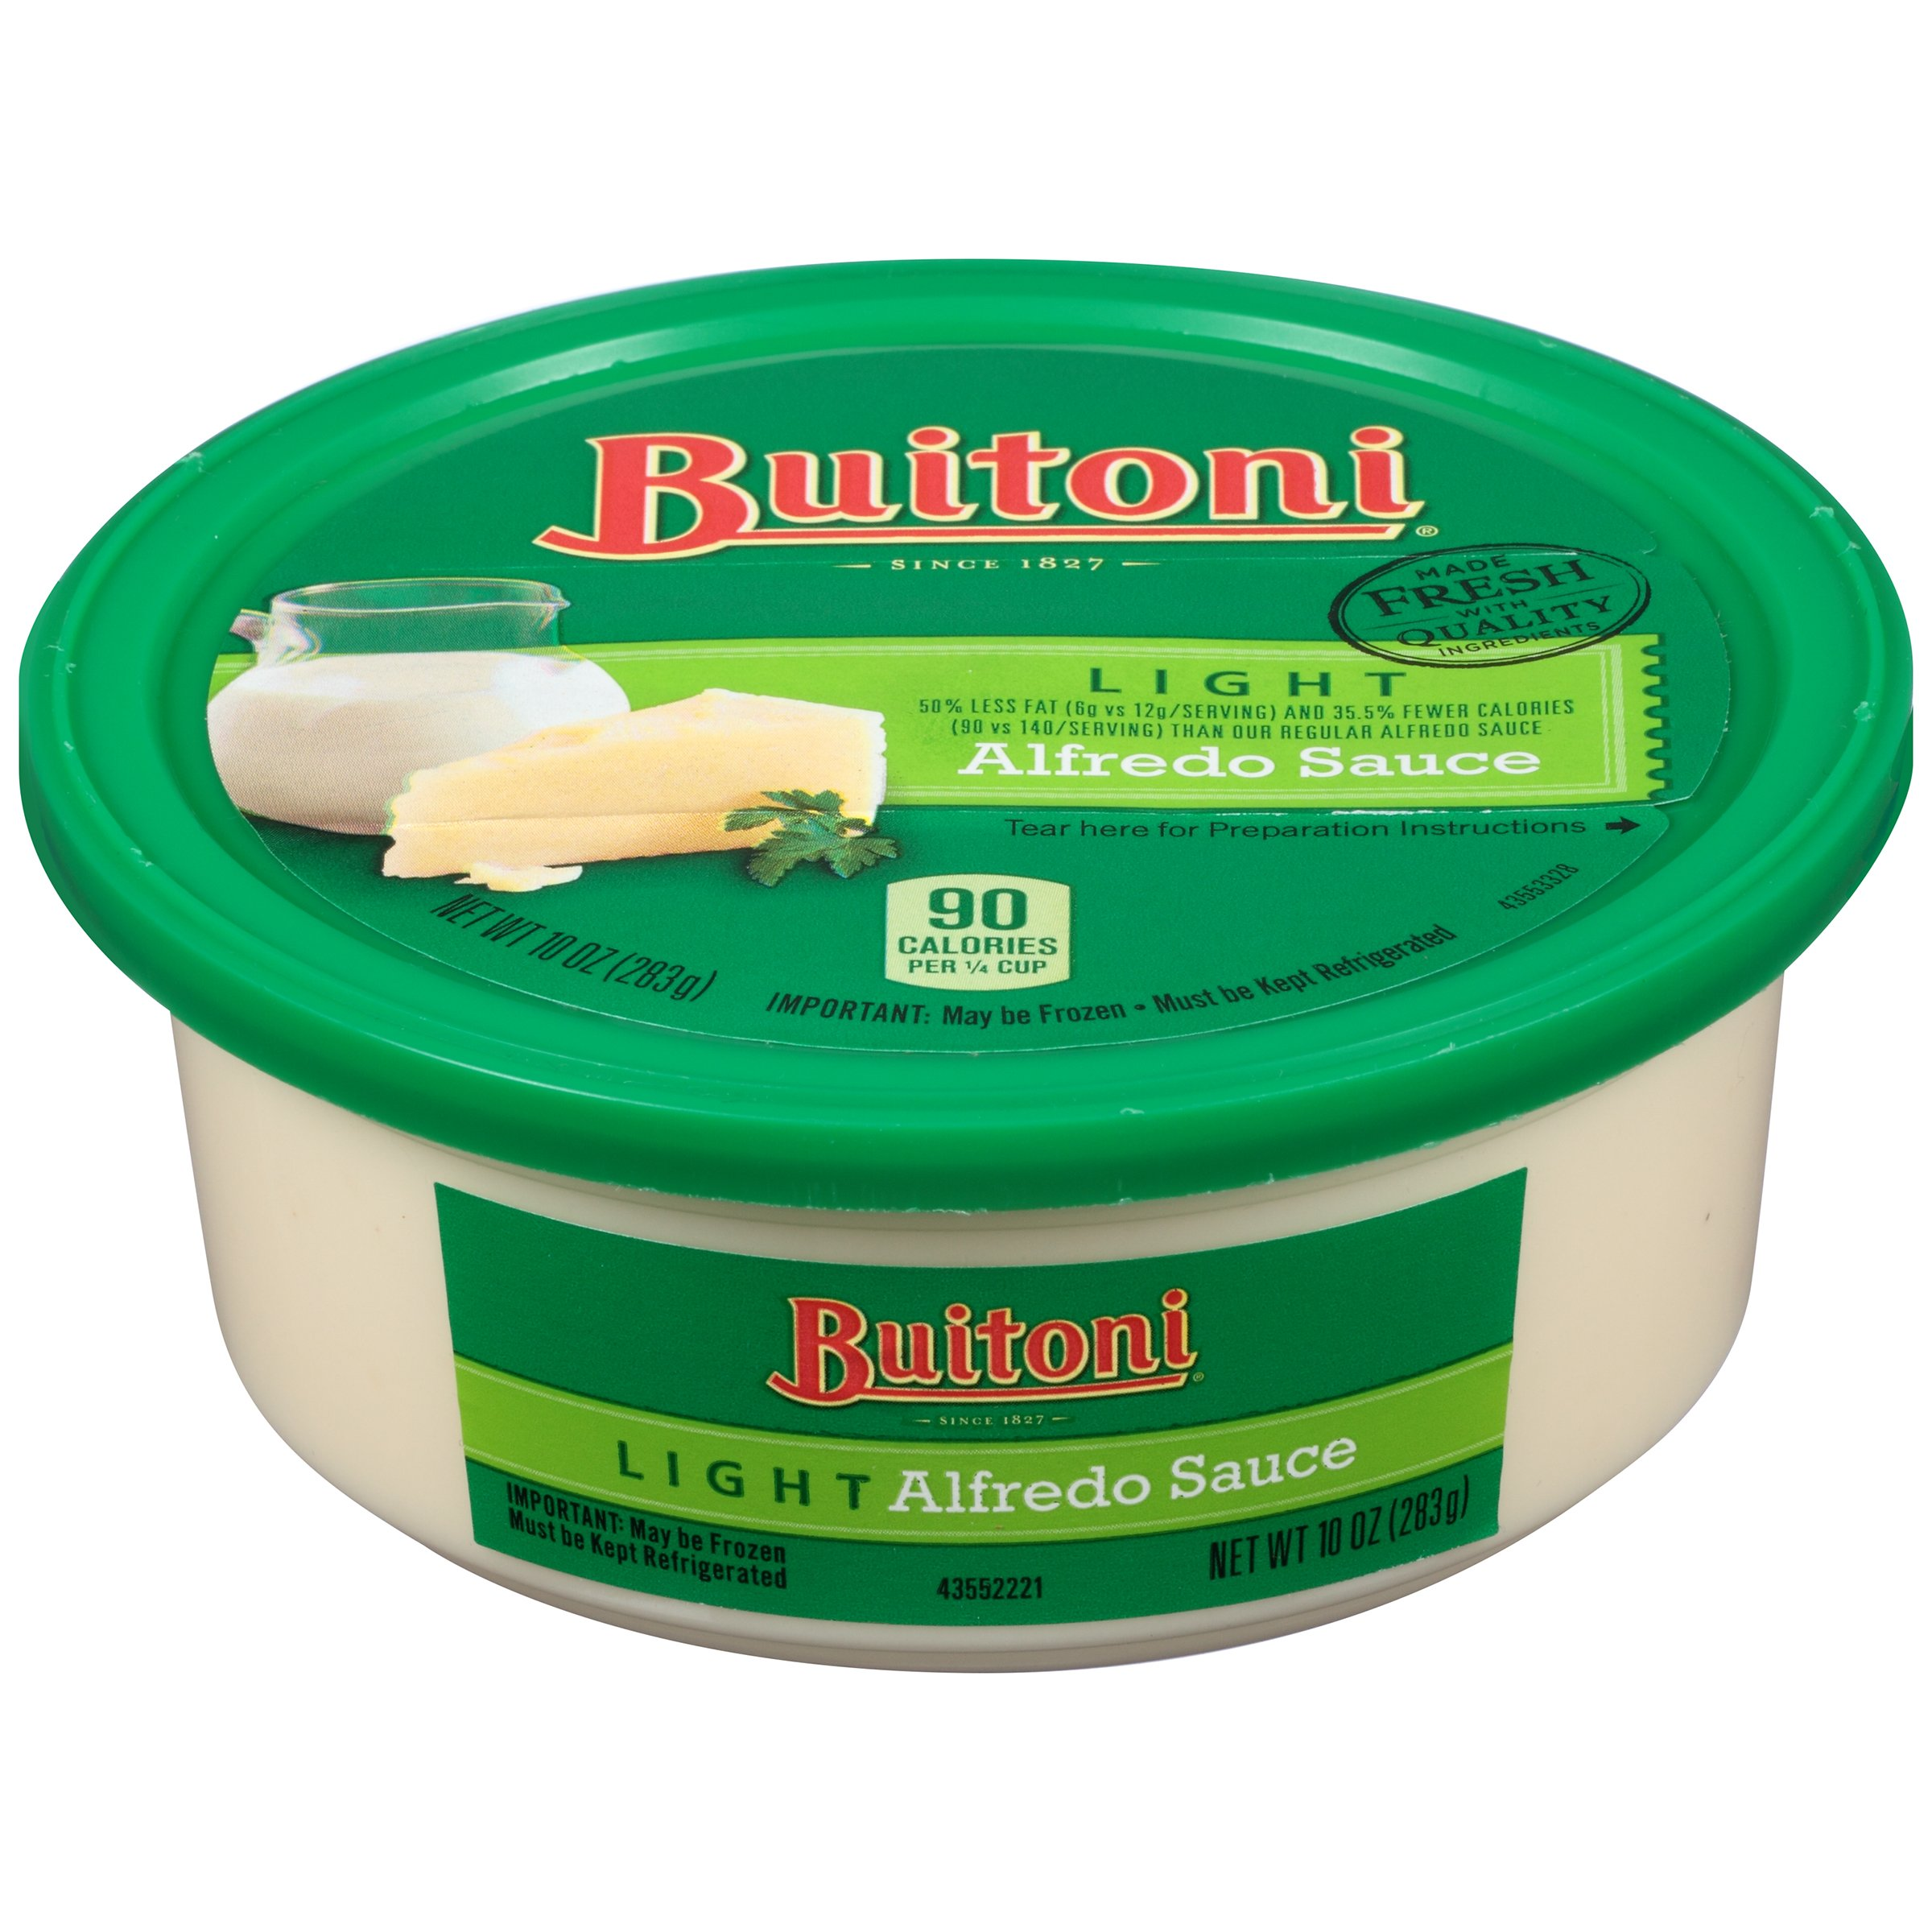 Exceptional Buitoni Light Alfredo Sauce   Shop Entrees U0026 Sides At HEB